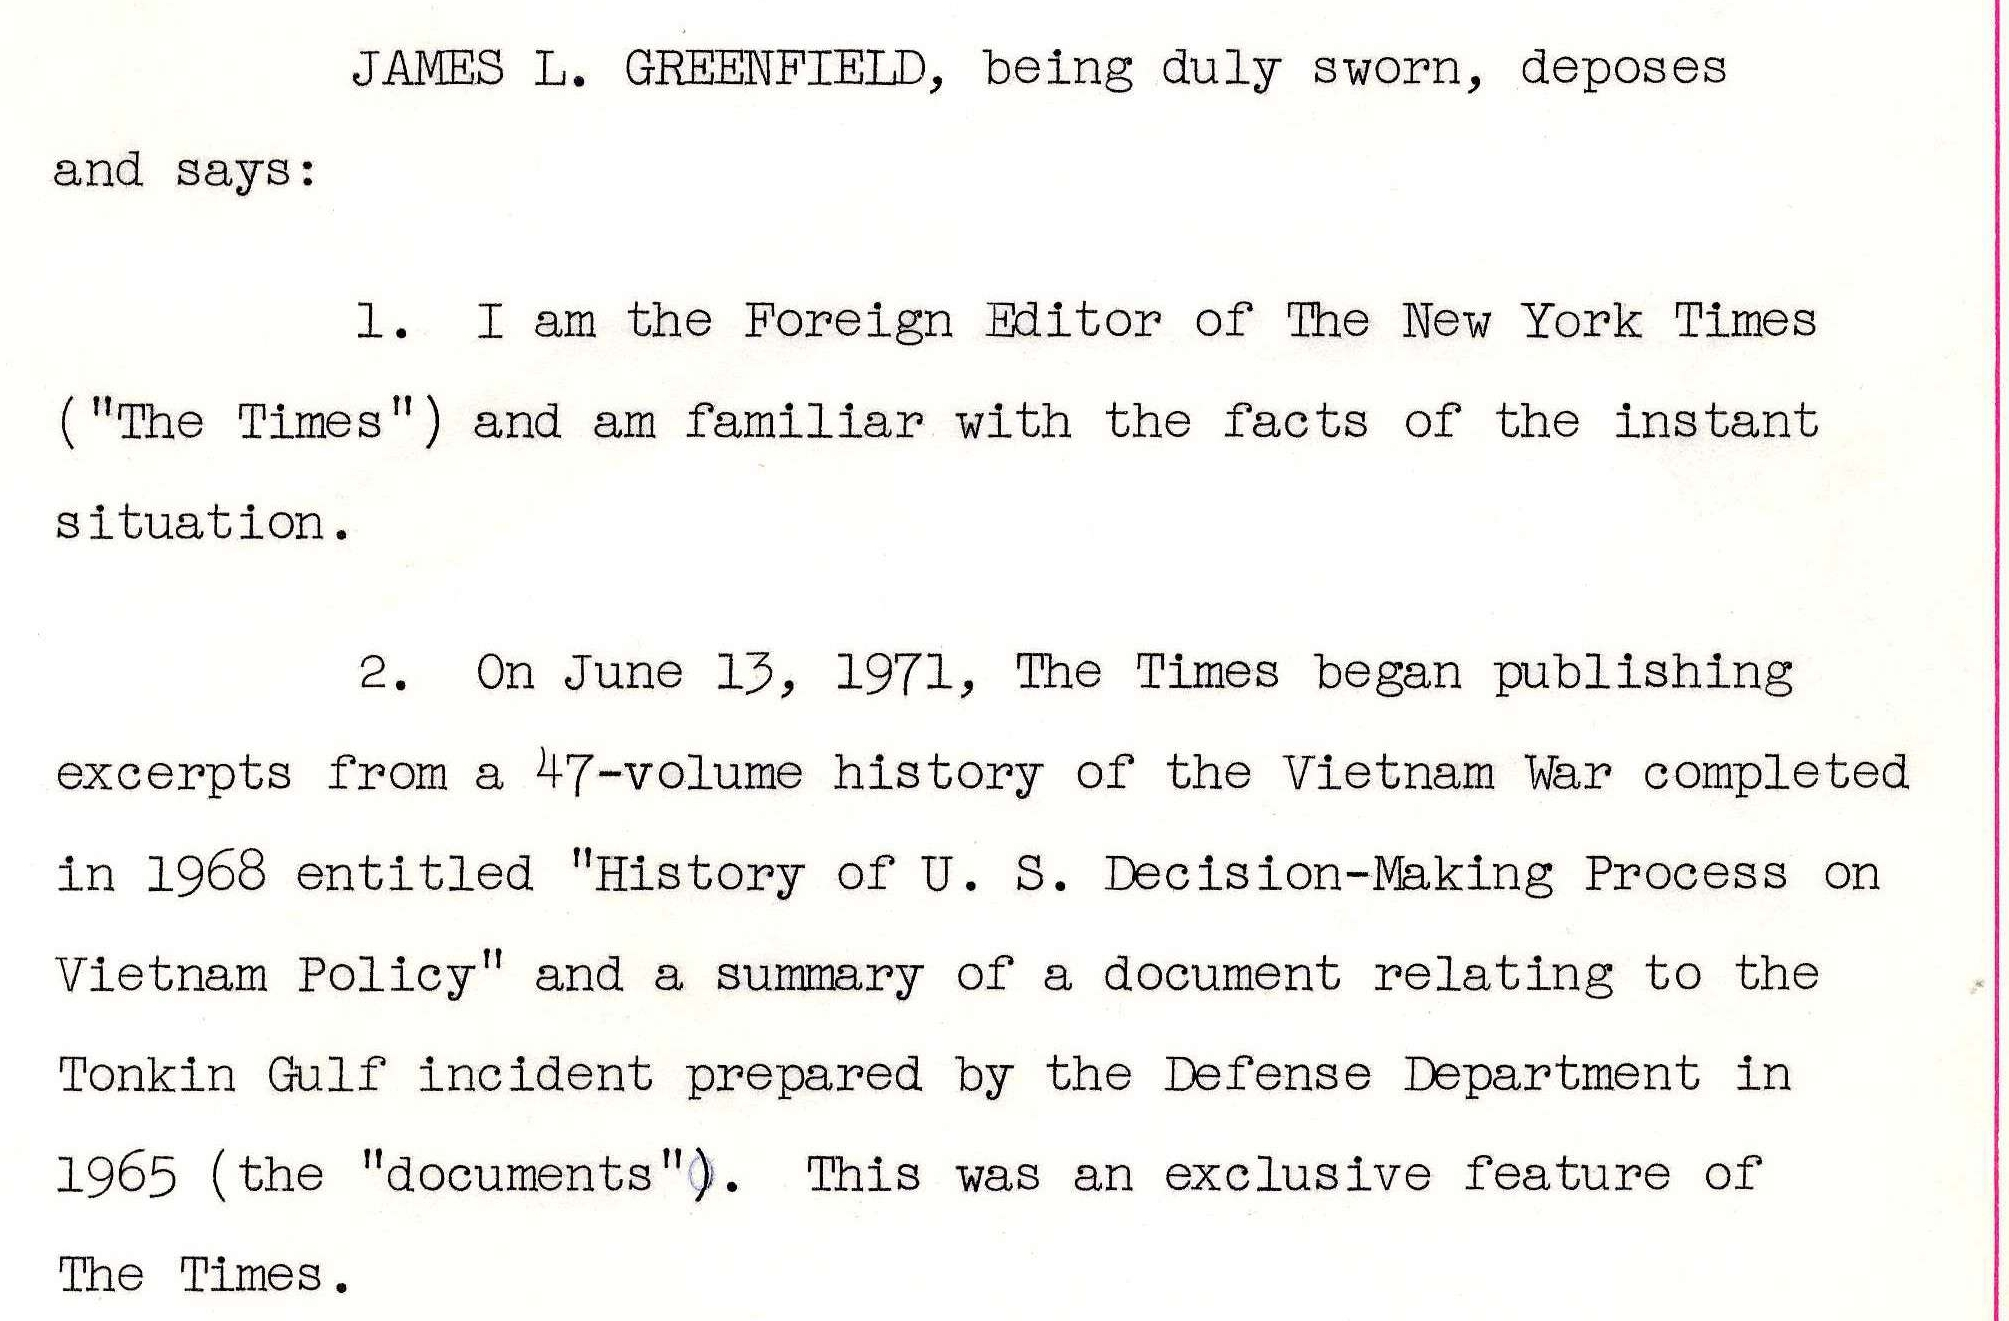 Affidavit of James L. Greenfield